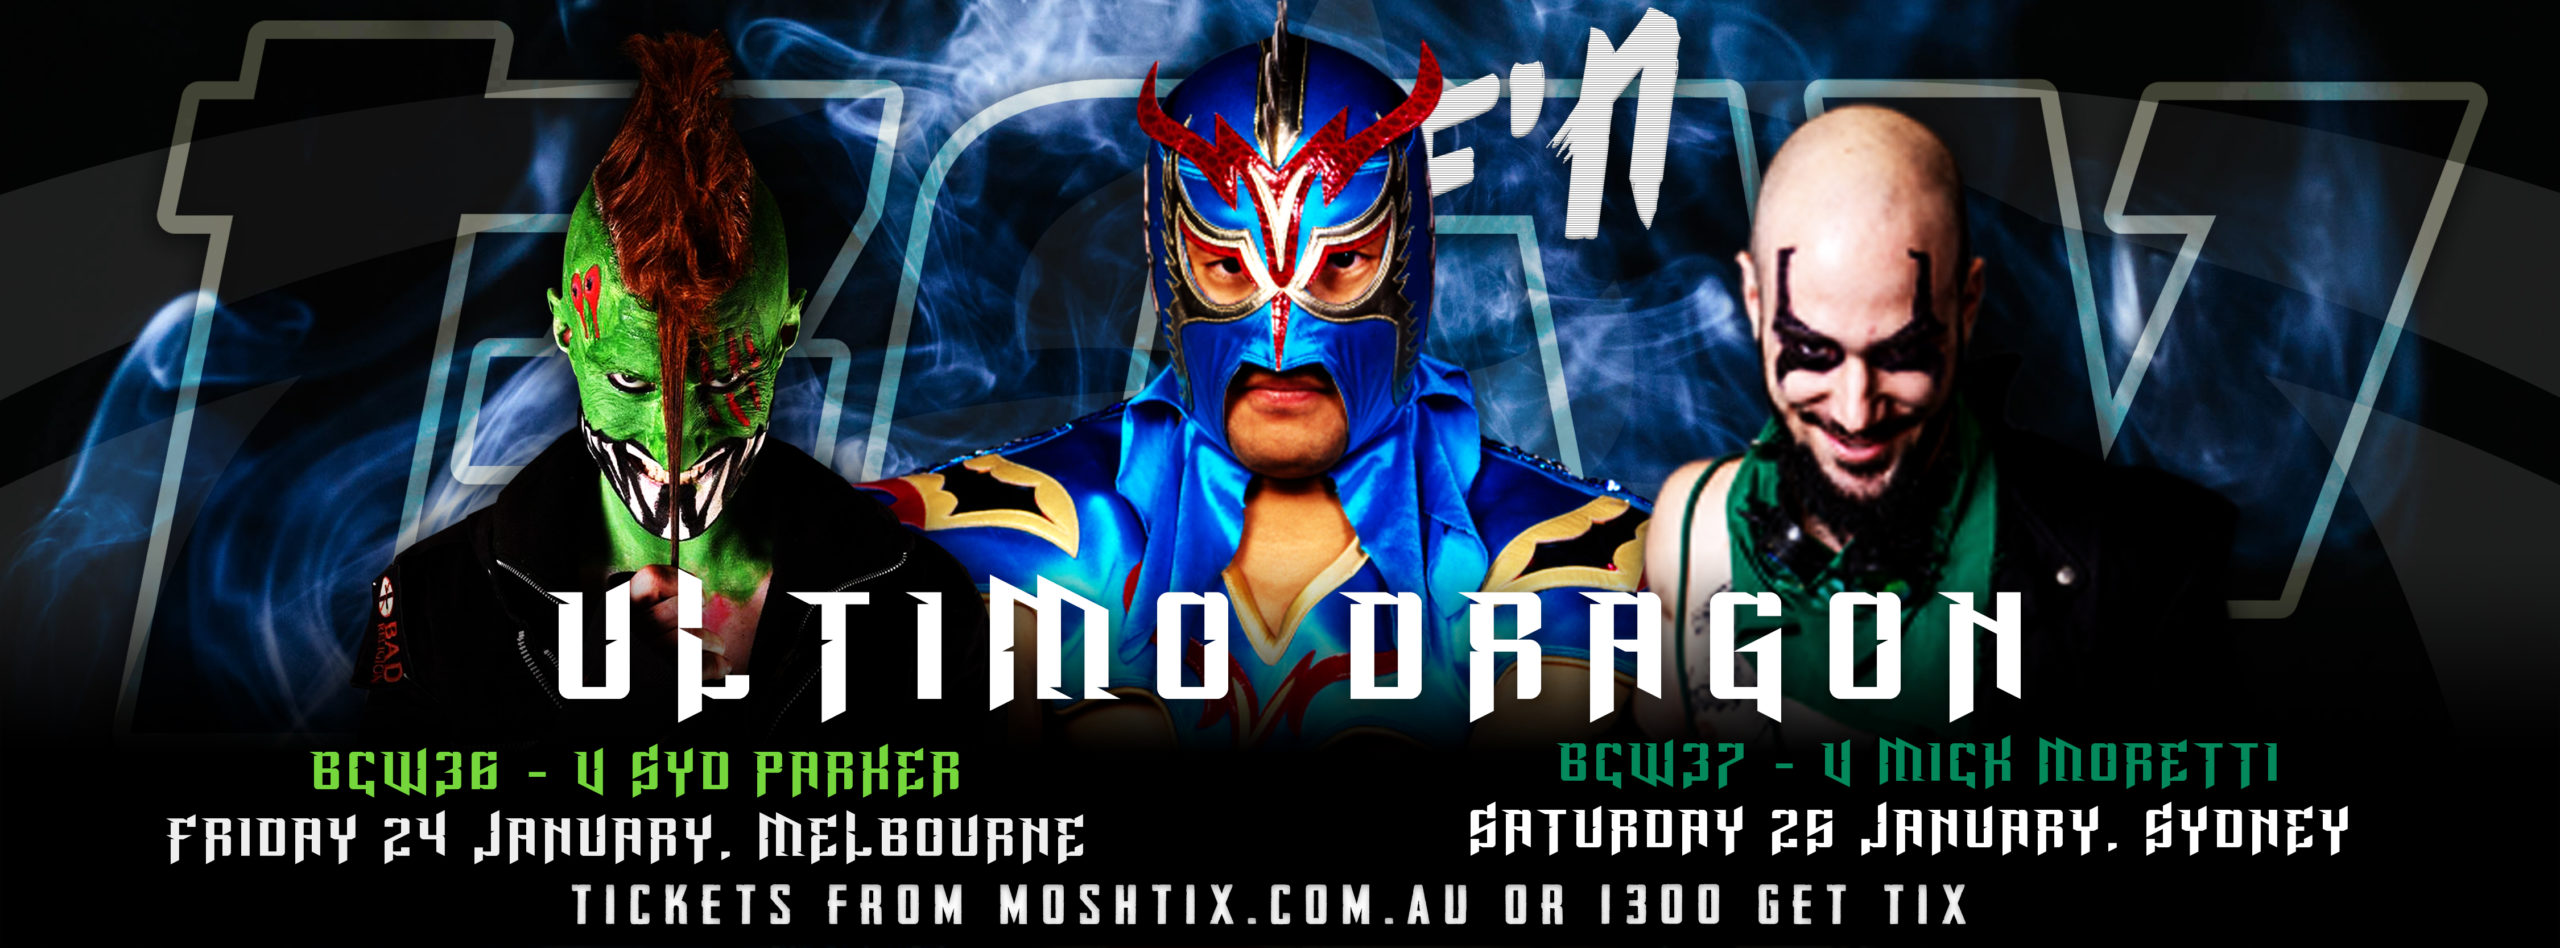 BCW36 - Friday 24 January, Melbourne | BCW37 - Saturday 25 January, Sydney